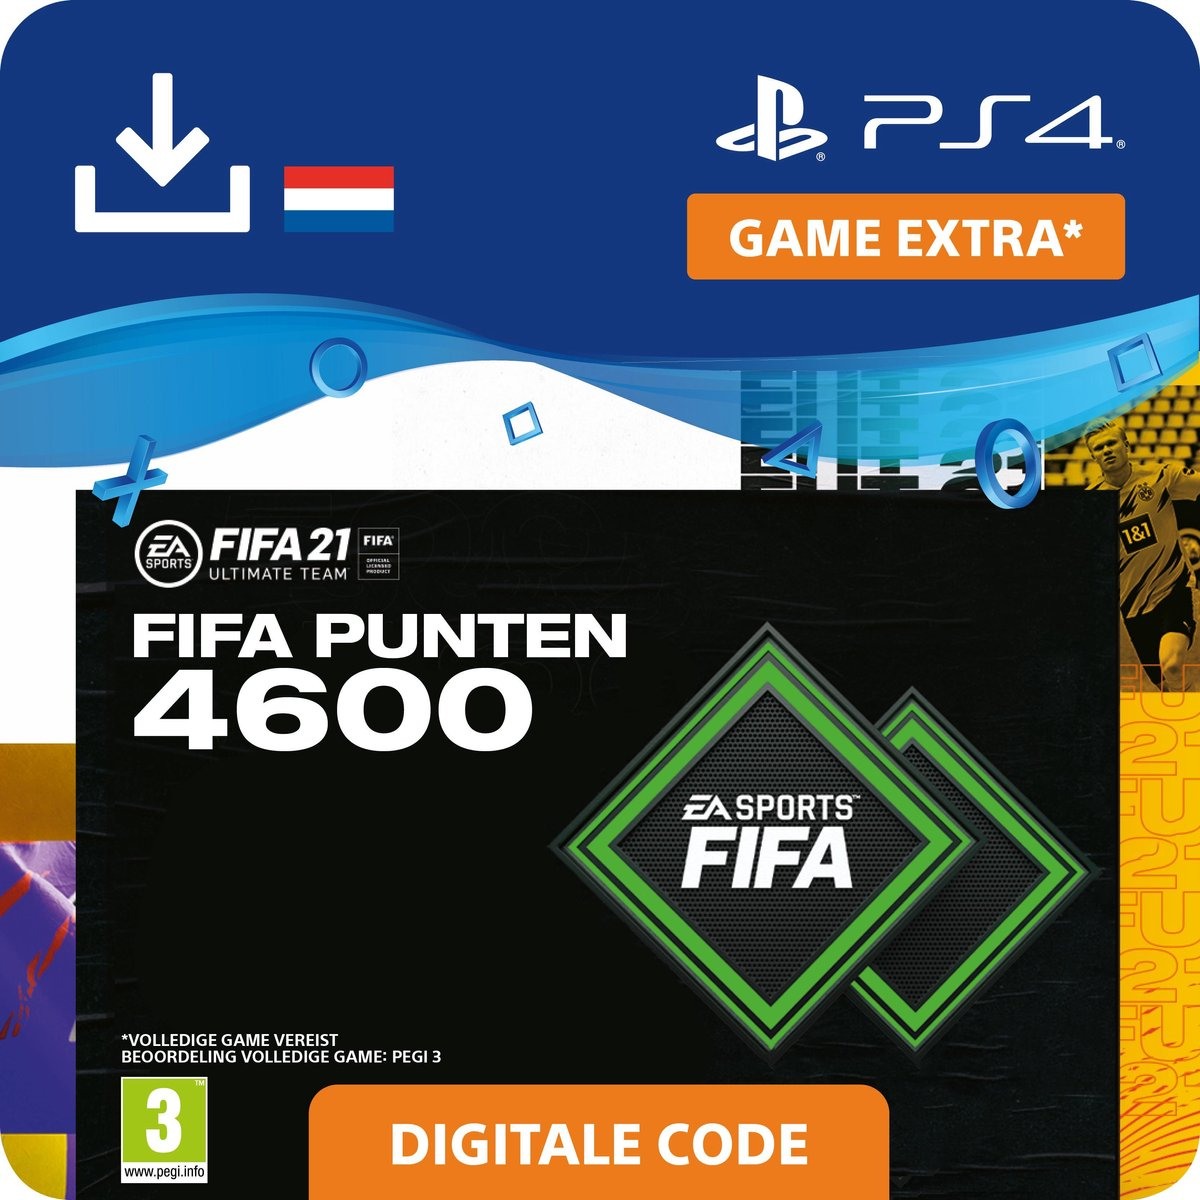 4.600 FUT Punten - FIFA 21 Ultimate Team - In-Game tegoed   PS4/PS5 Download - NL